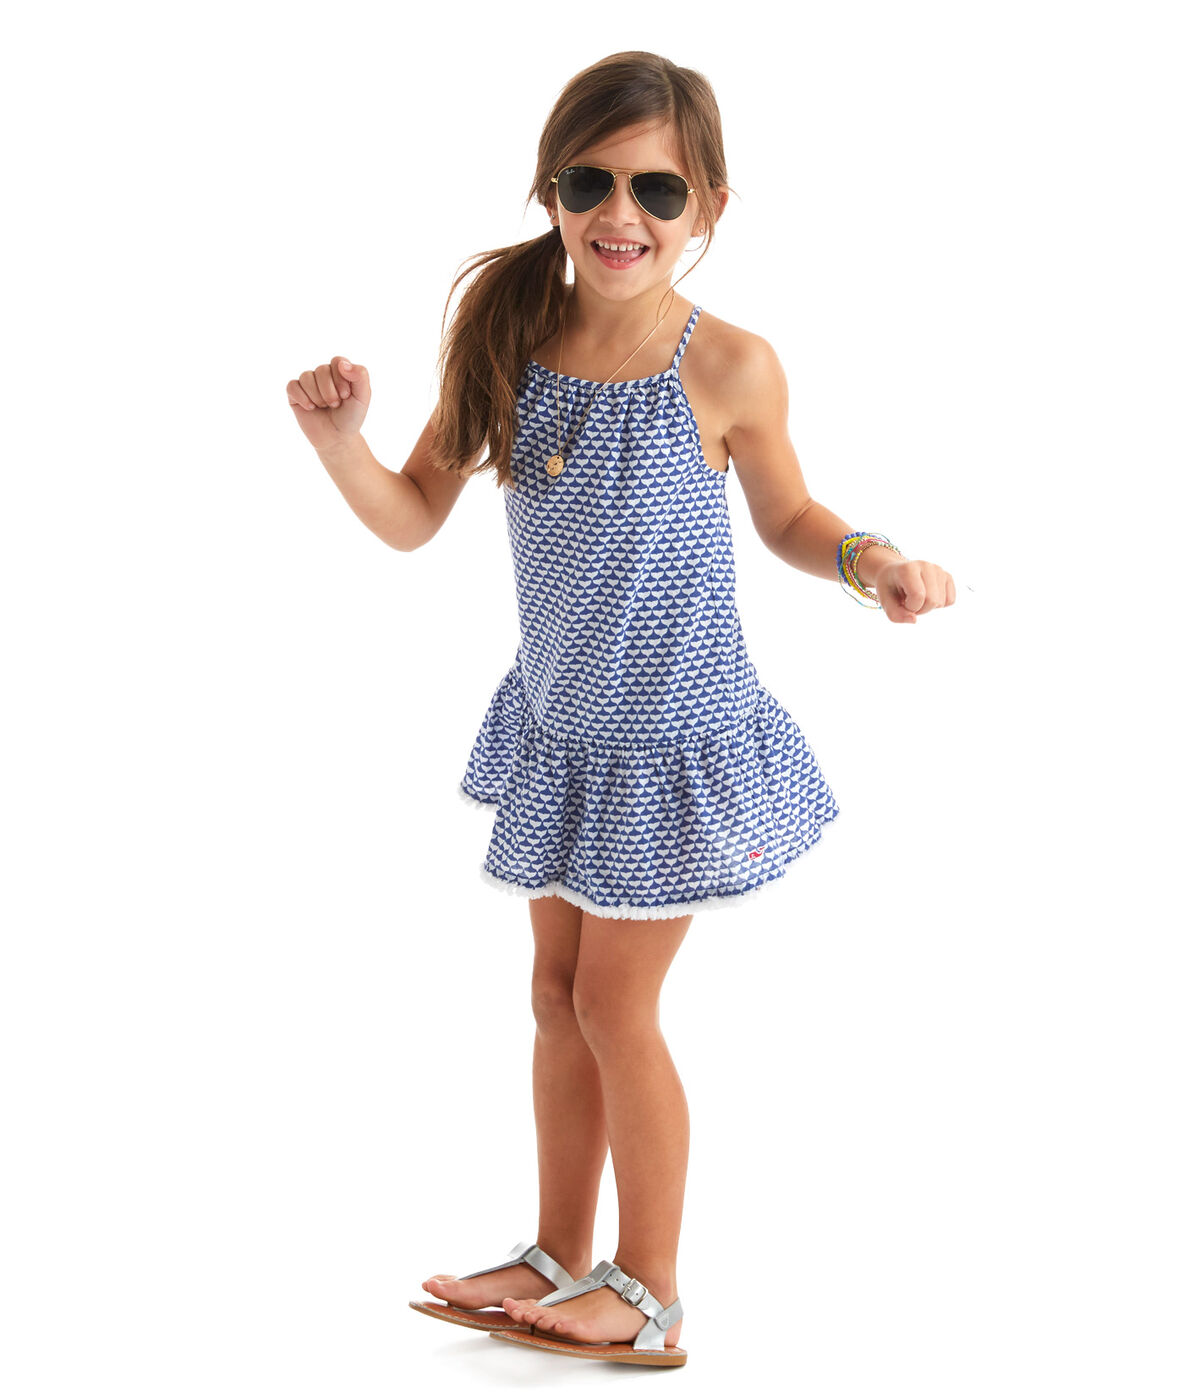 Shop Girls Dresses - Toddler and Girls Sizes at vineyard vines